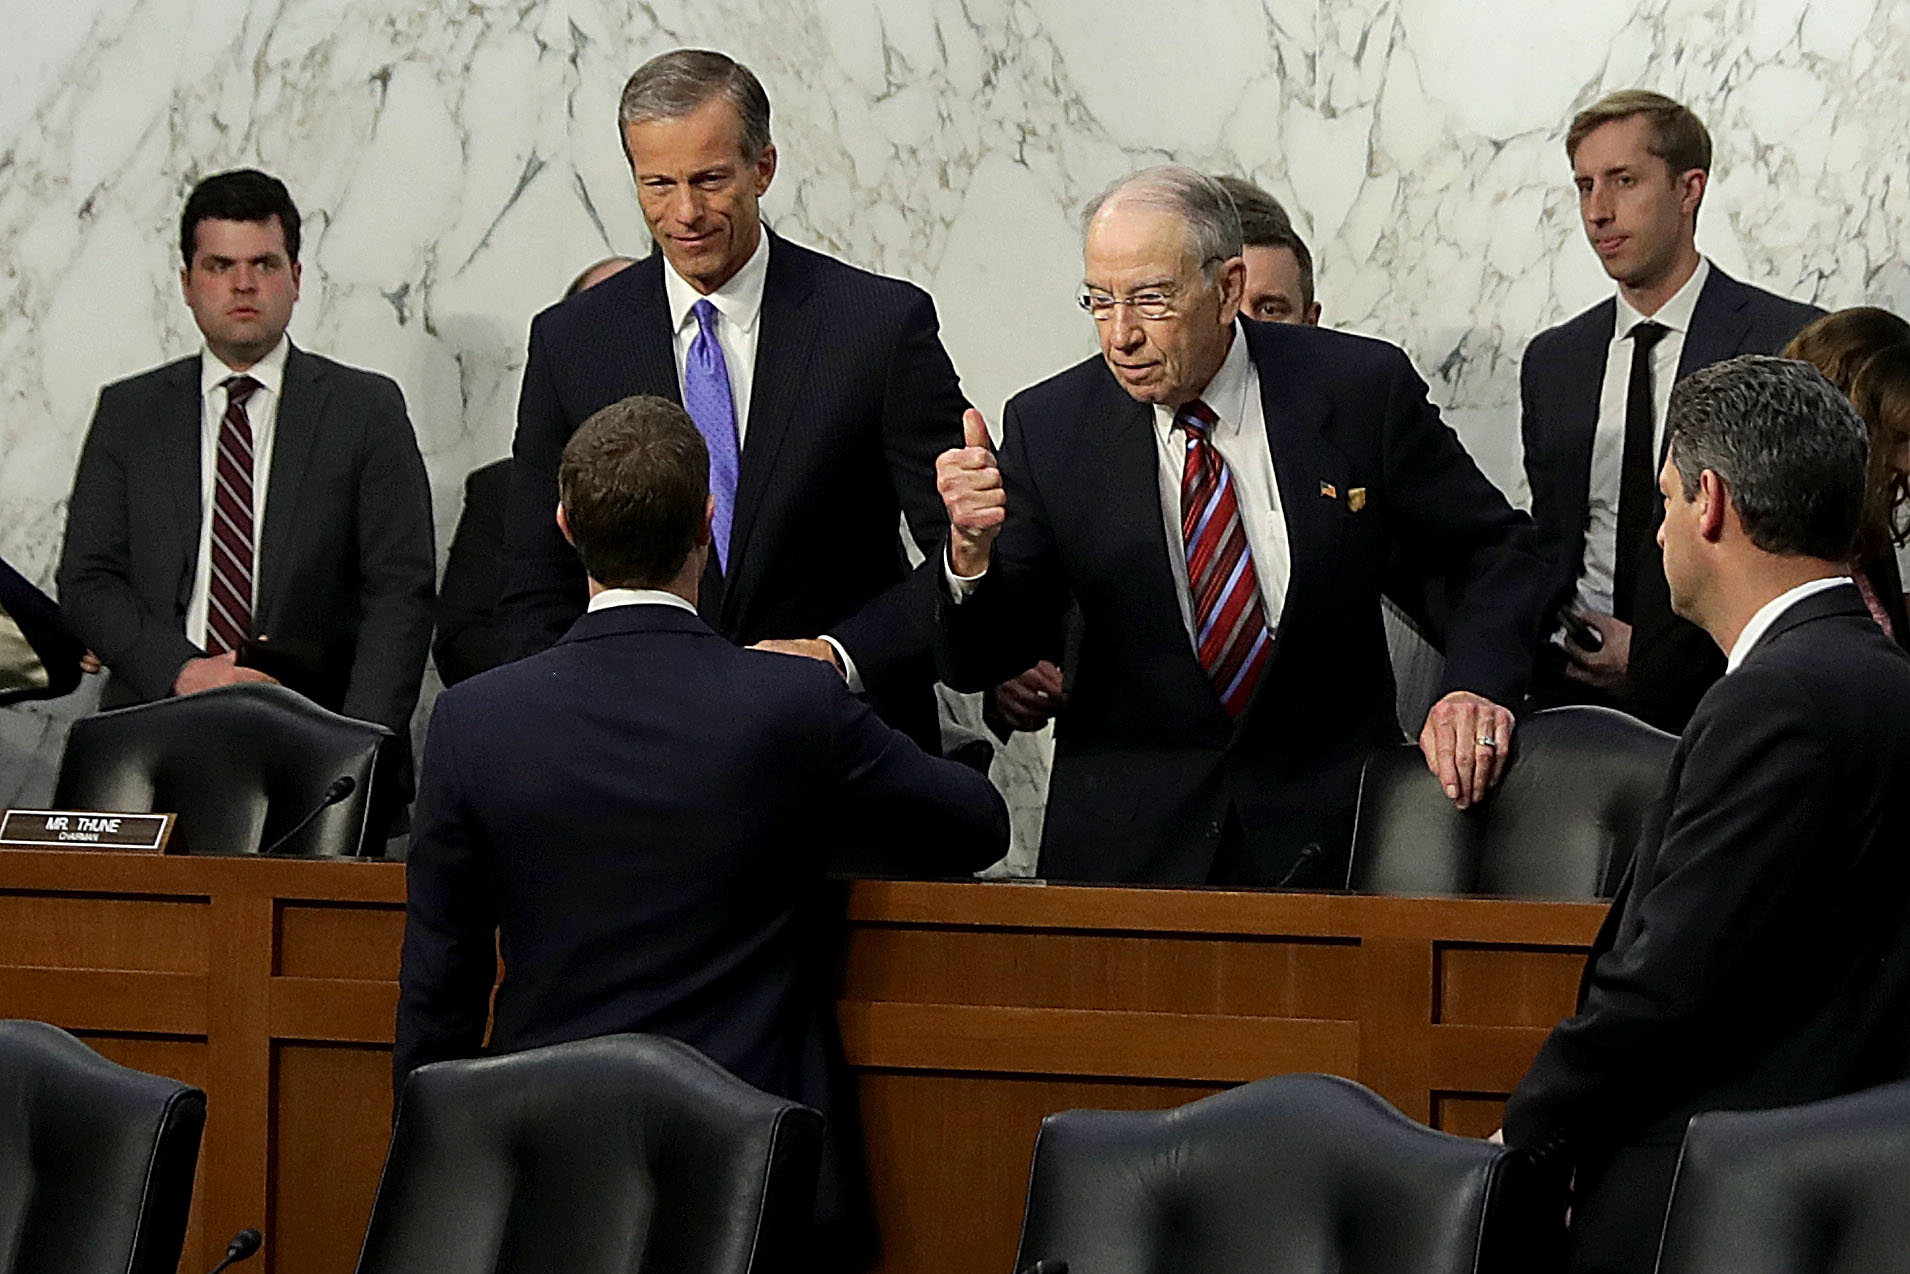 Facebook CEO Mark Zuckerberg shakes hands with senators after his congressional testimony on April 10, 2018.